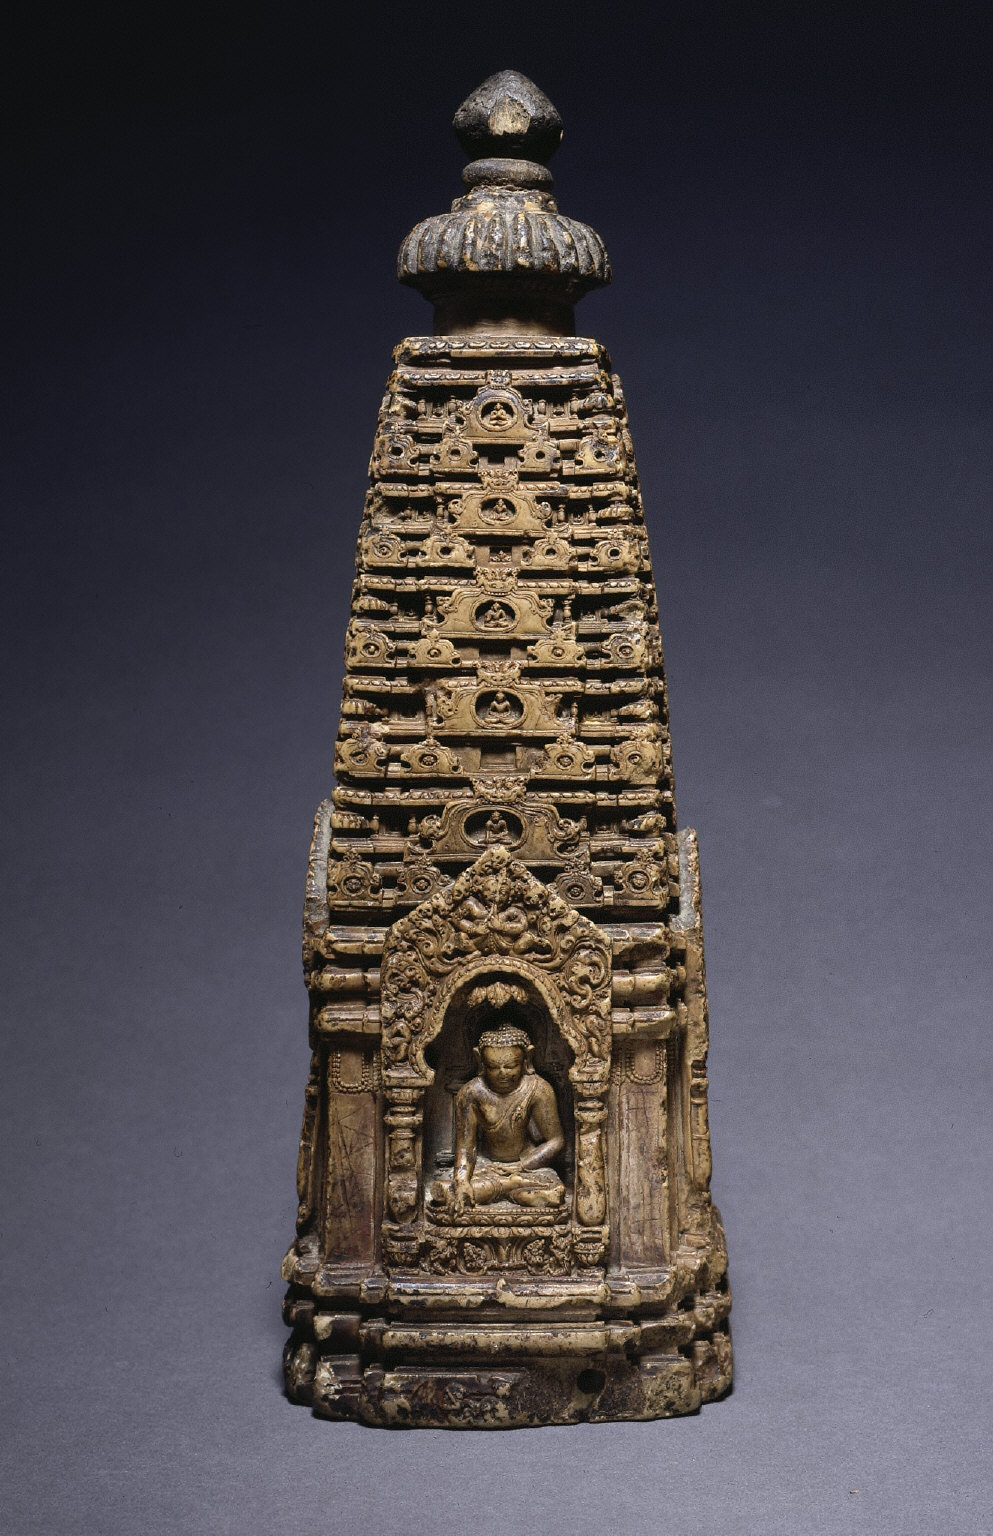 Model of the Sikhara of a Buddhist Temple